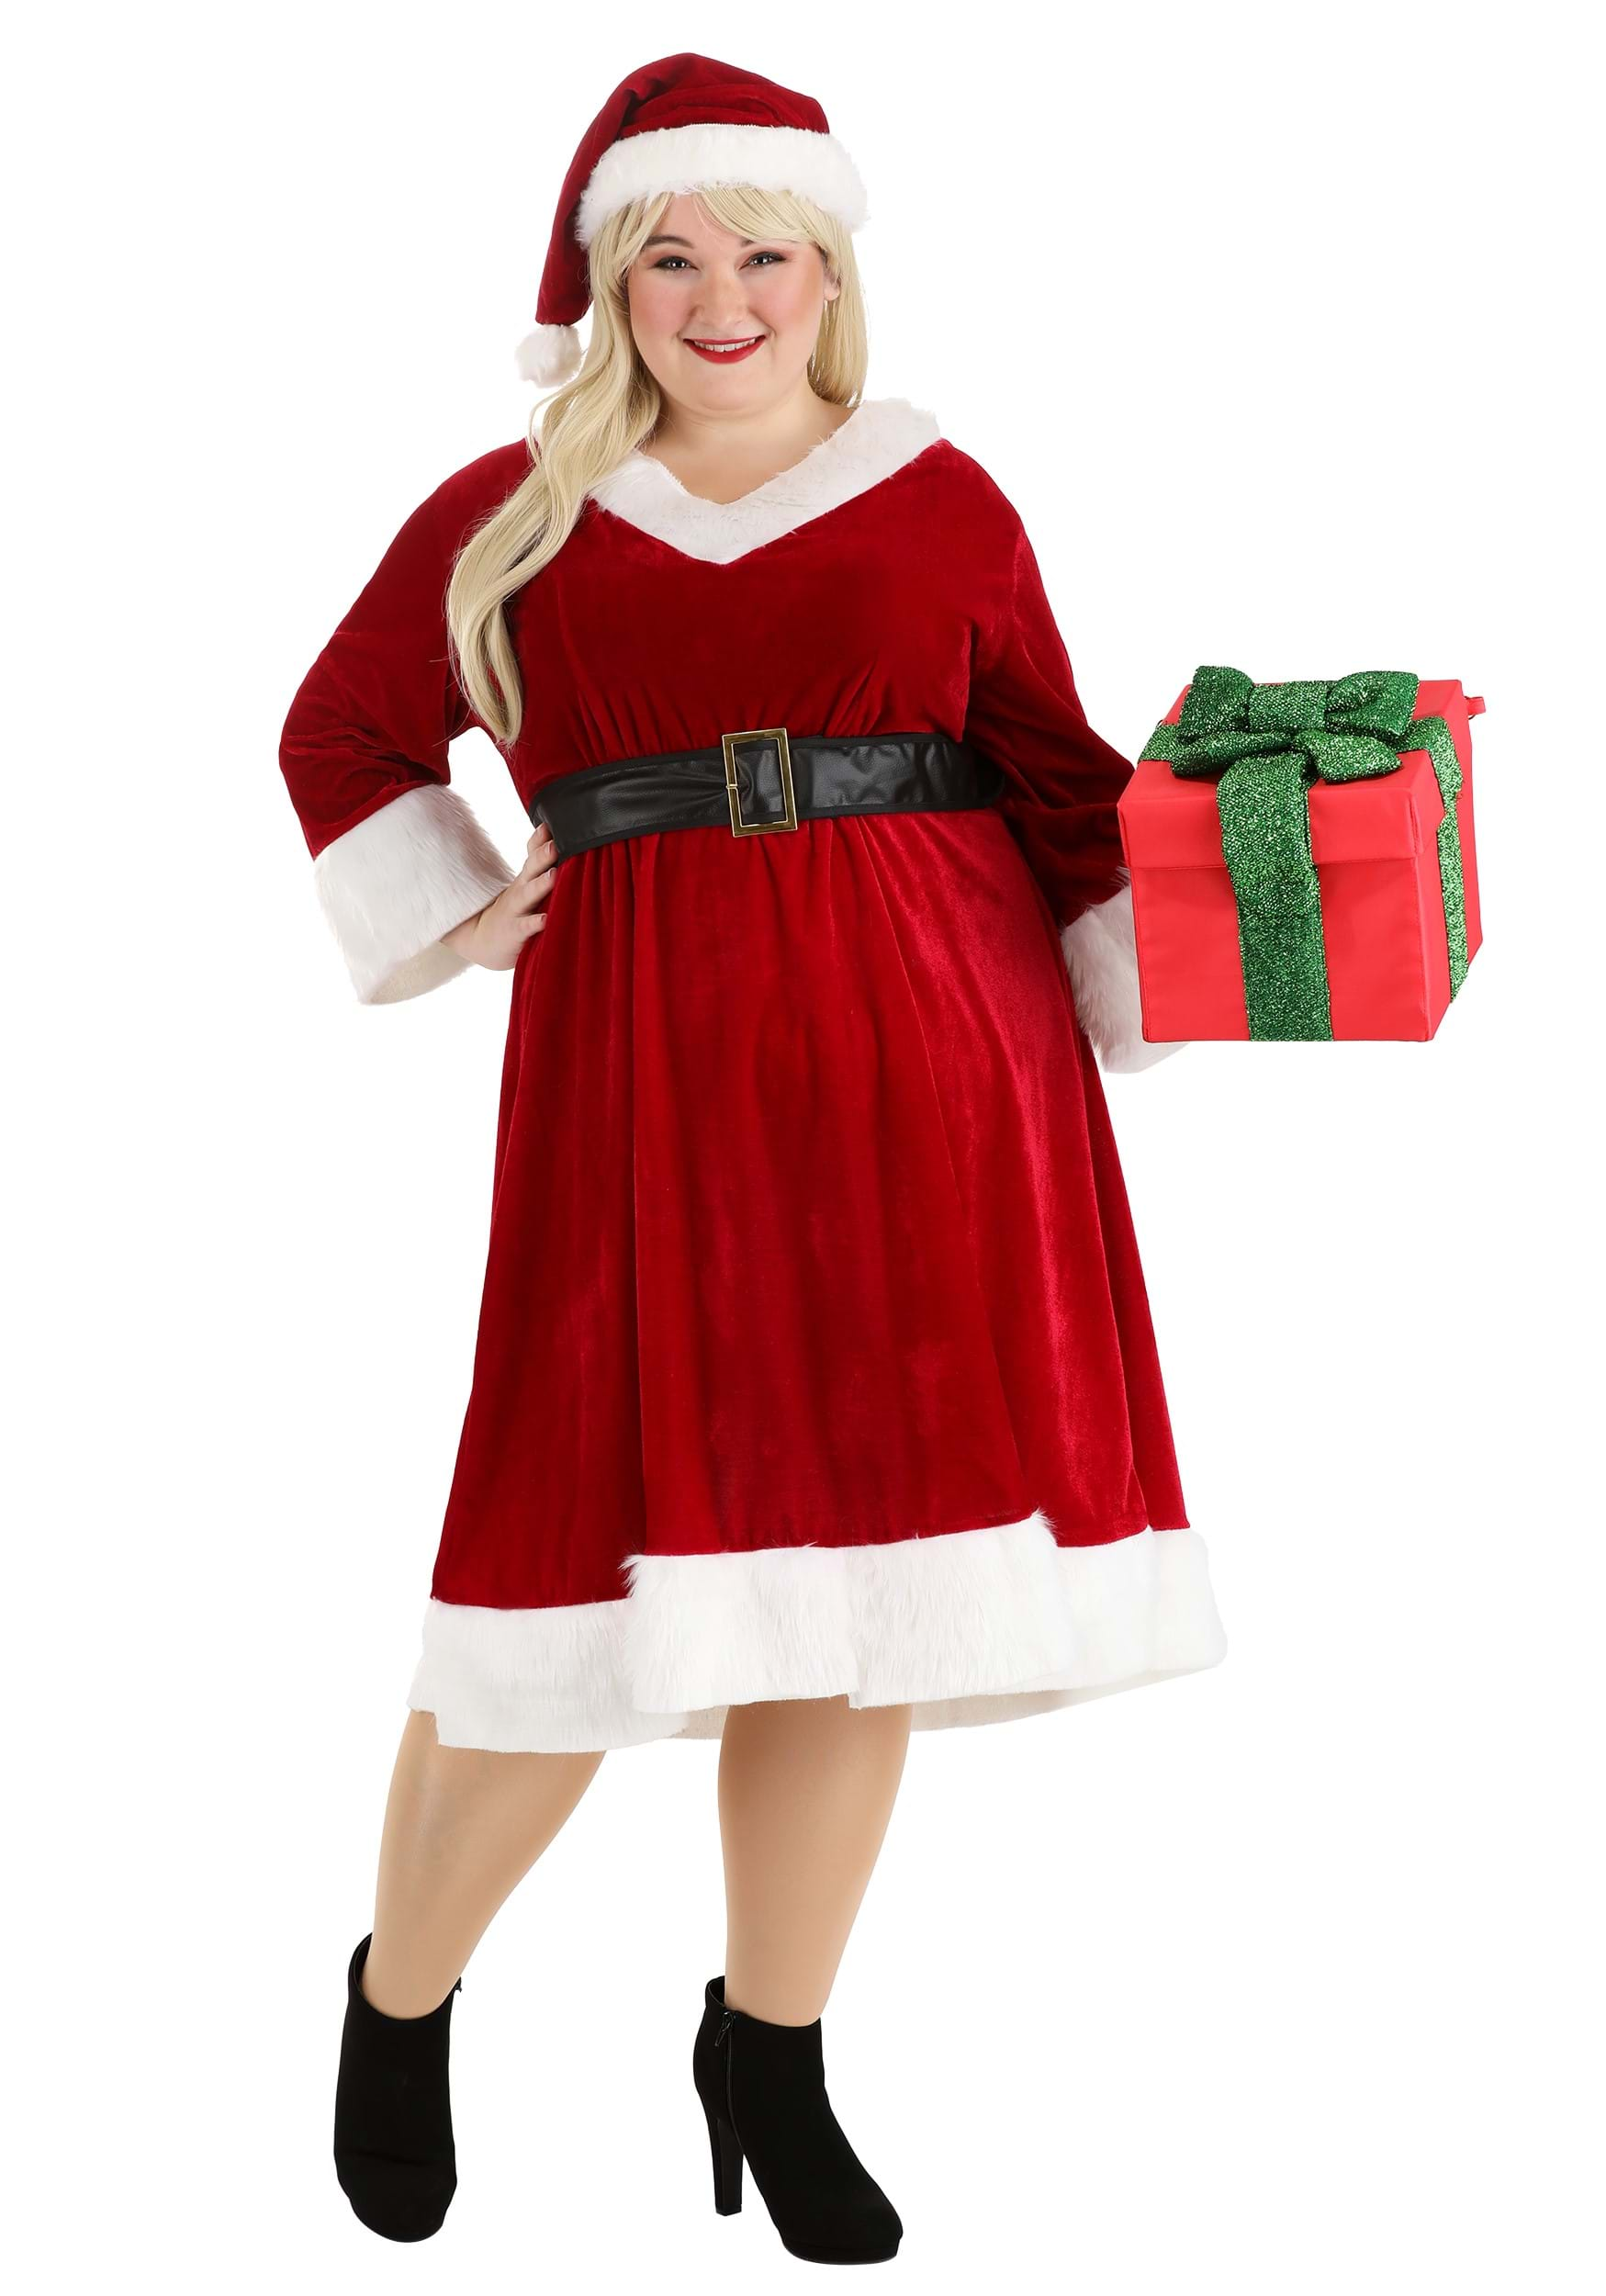 ef62e6a5266 Plus Size Santa Claus Sweetie Costume for Women 1X 2X 3X 4X